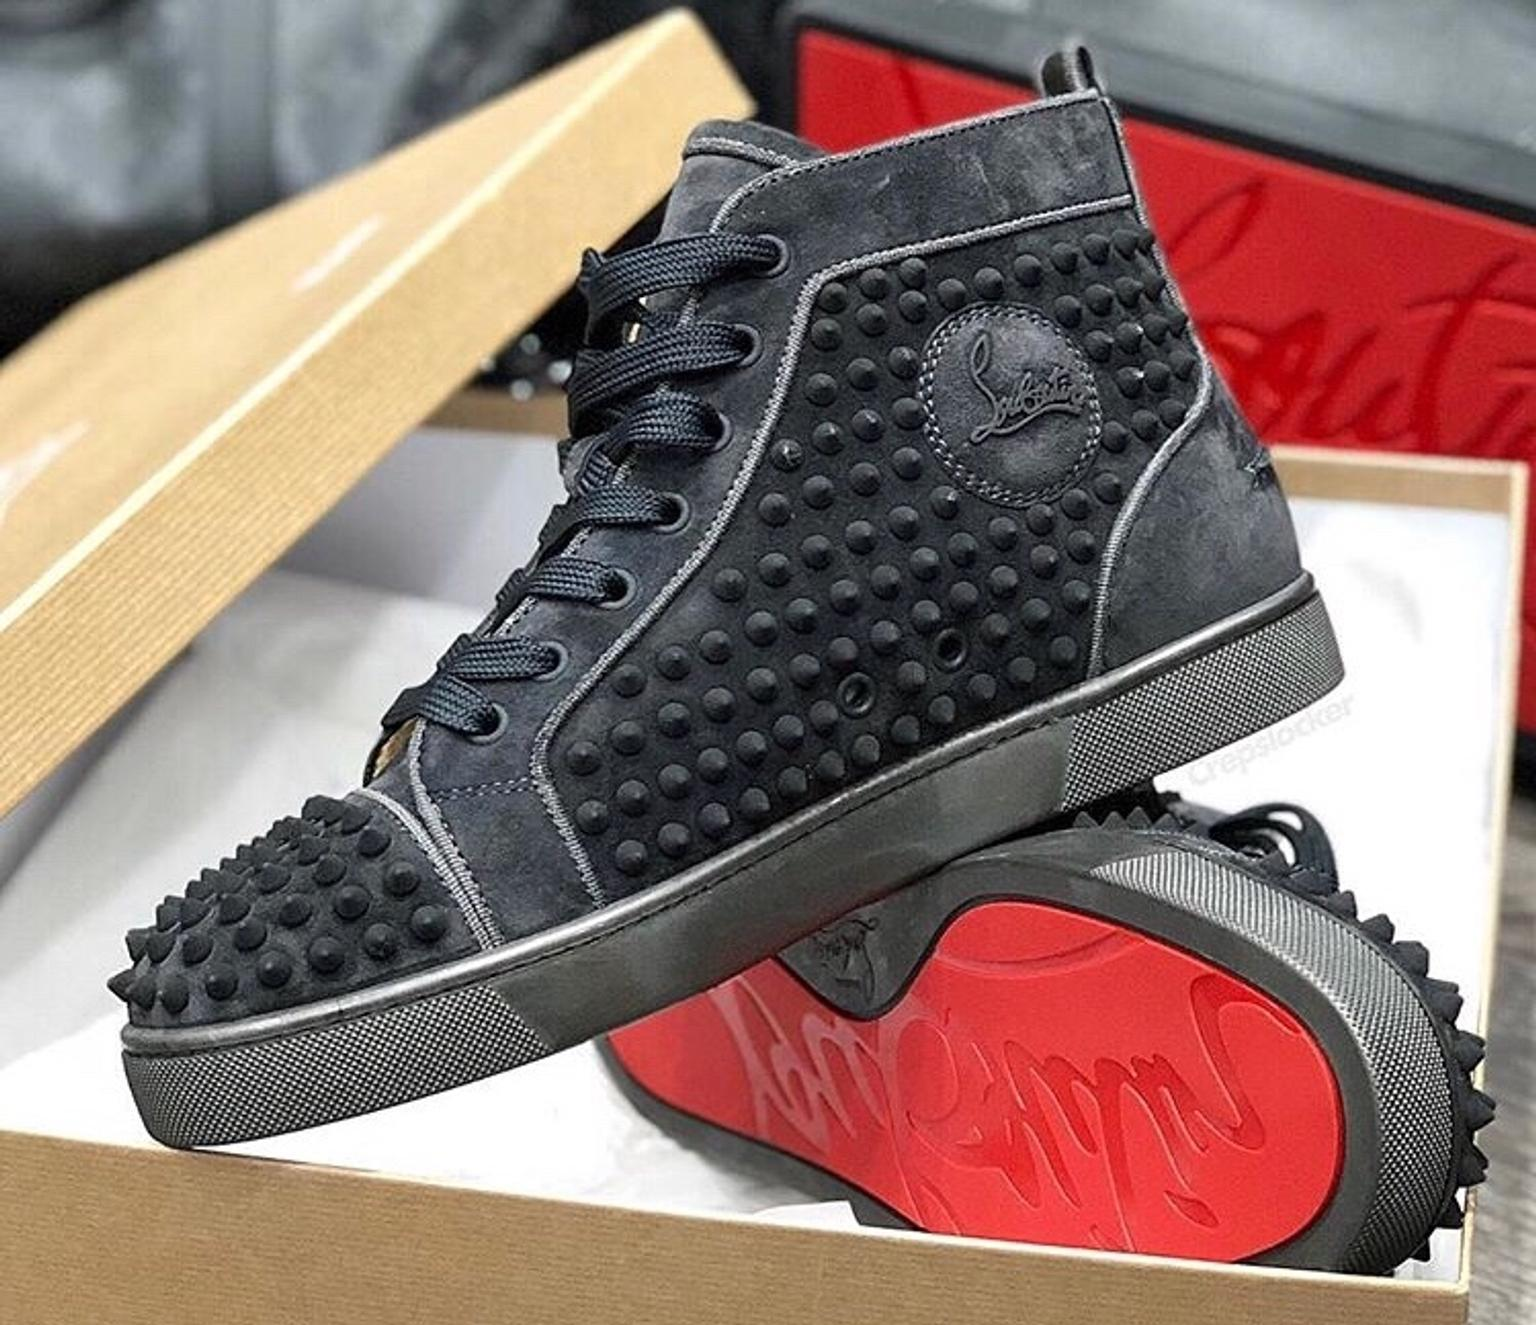 CHRISTIAN LOUBOUTIN SUEDE SPIKES HIGH TOPS